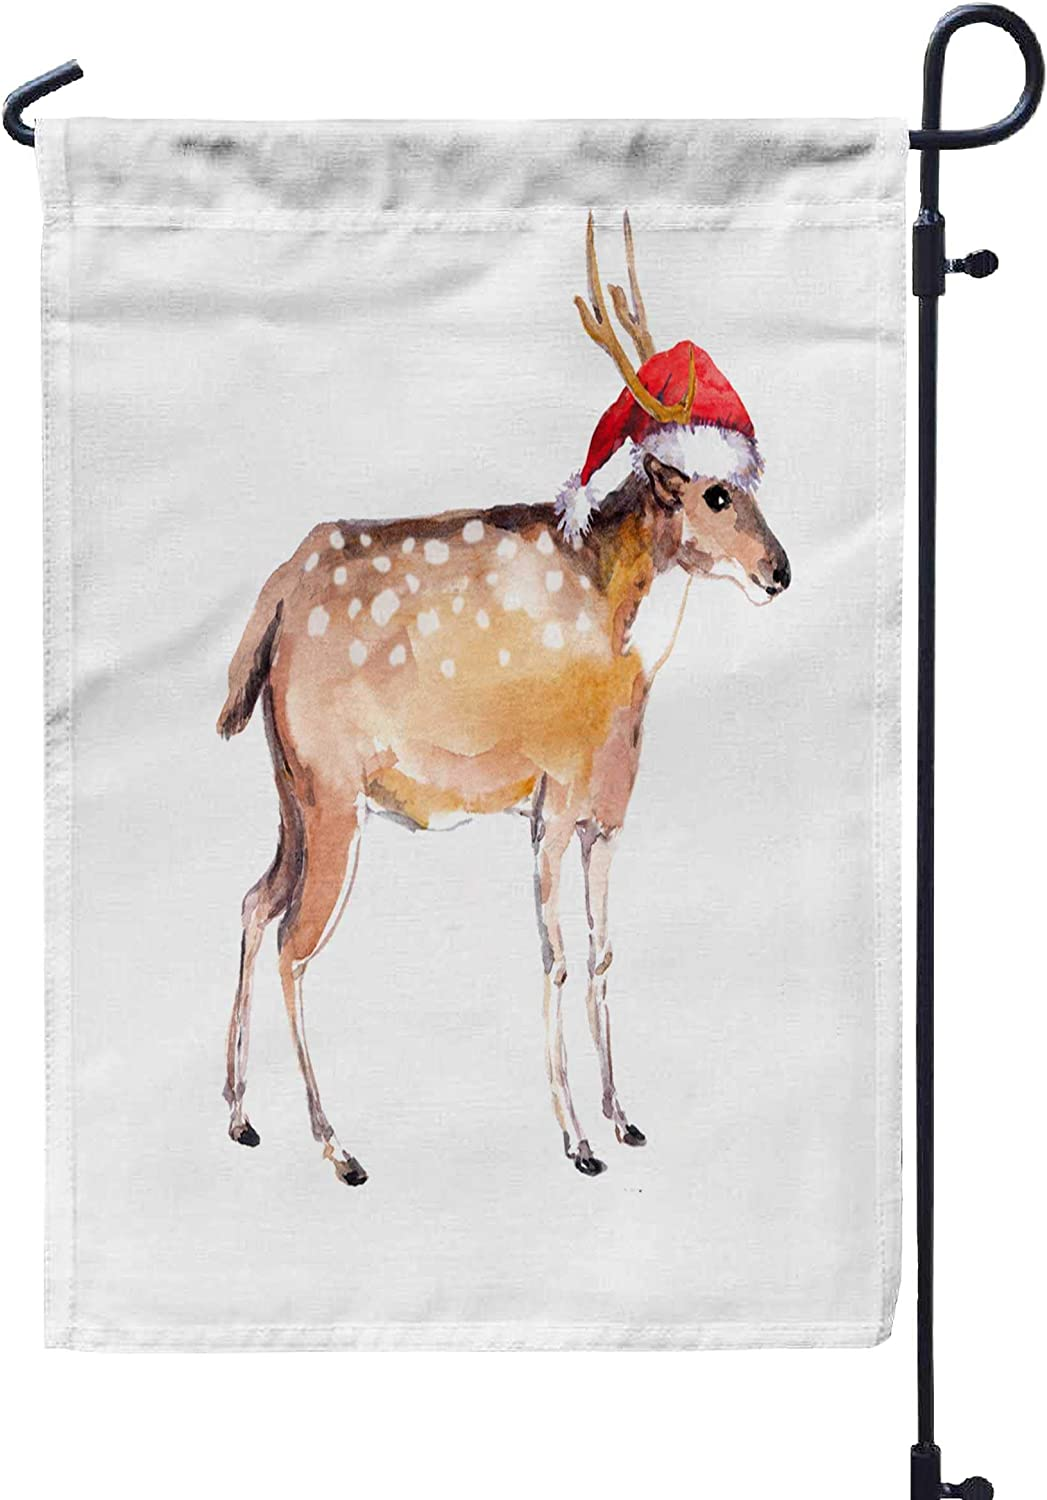 Bisead Garden Flag,Double Sided 12×18 Inch Spring Summer Outdoor Yard Decoration Cute New Year Deer in Red Hat Watercolor Christmas Animal,Gold Green